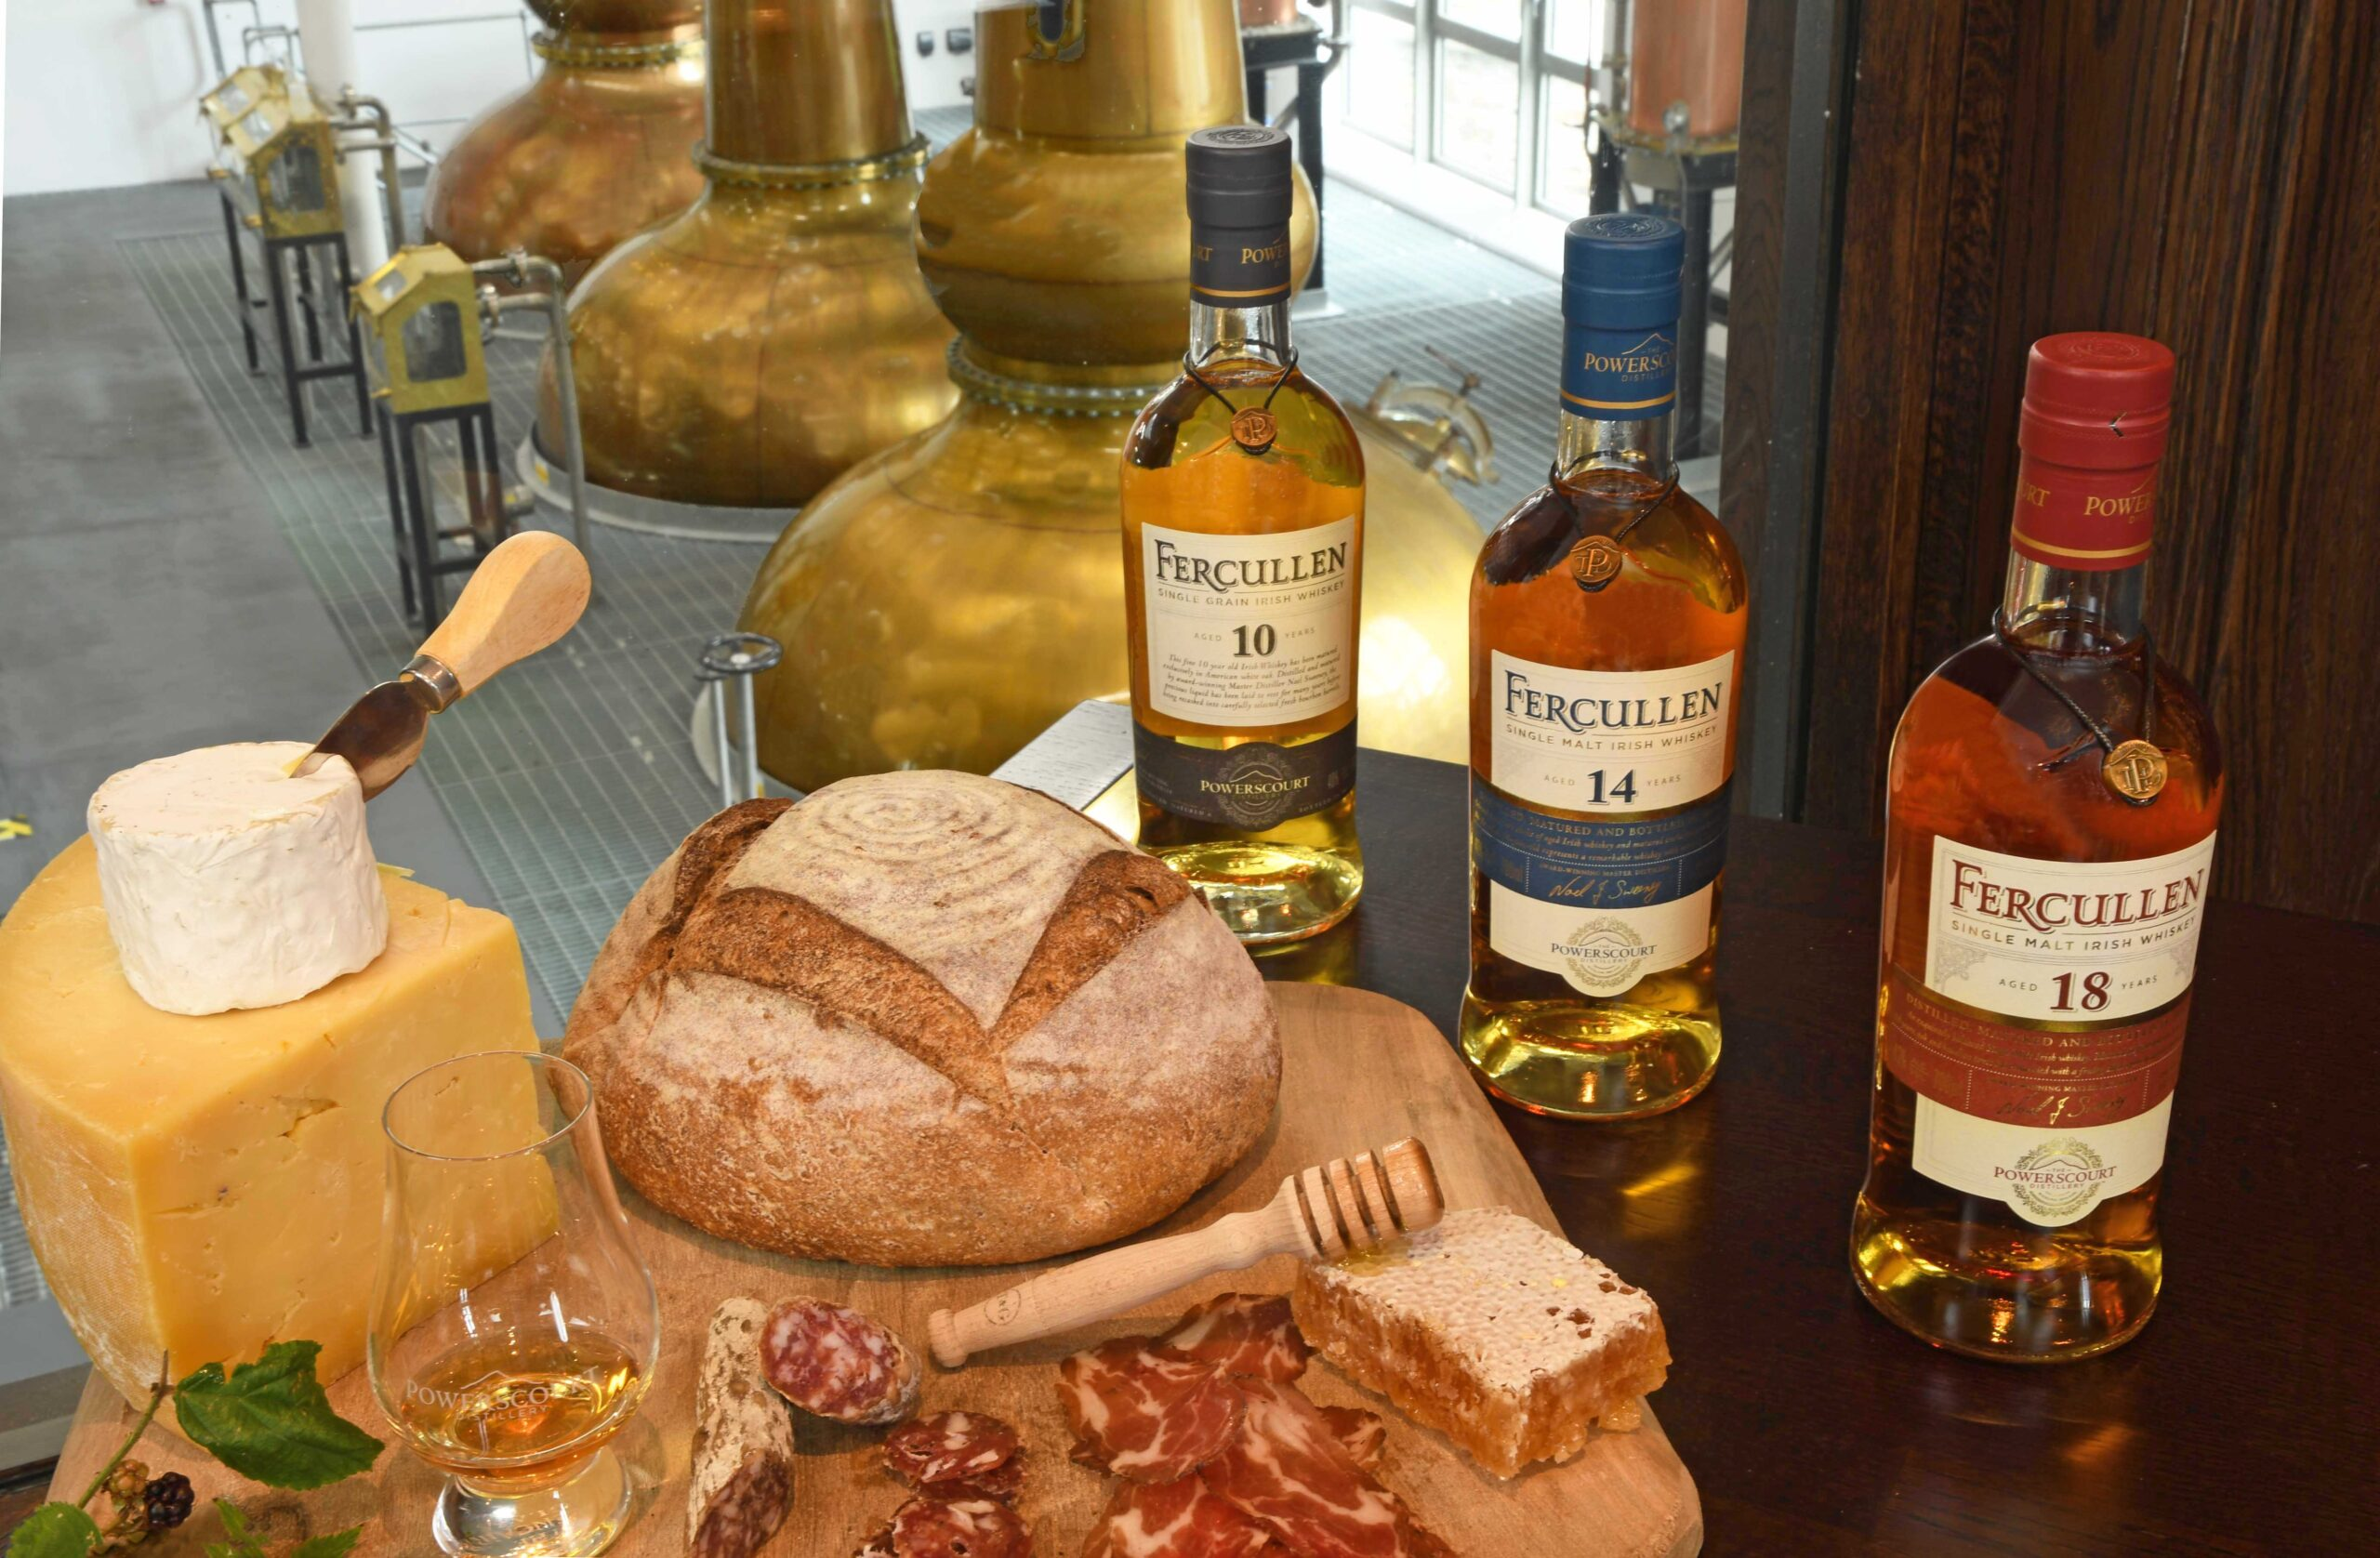 Irish food paired with Powerscourt Distillery's Fercullen range, a marriage made in gastronomy heaven!